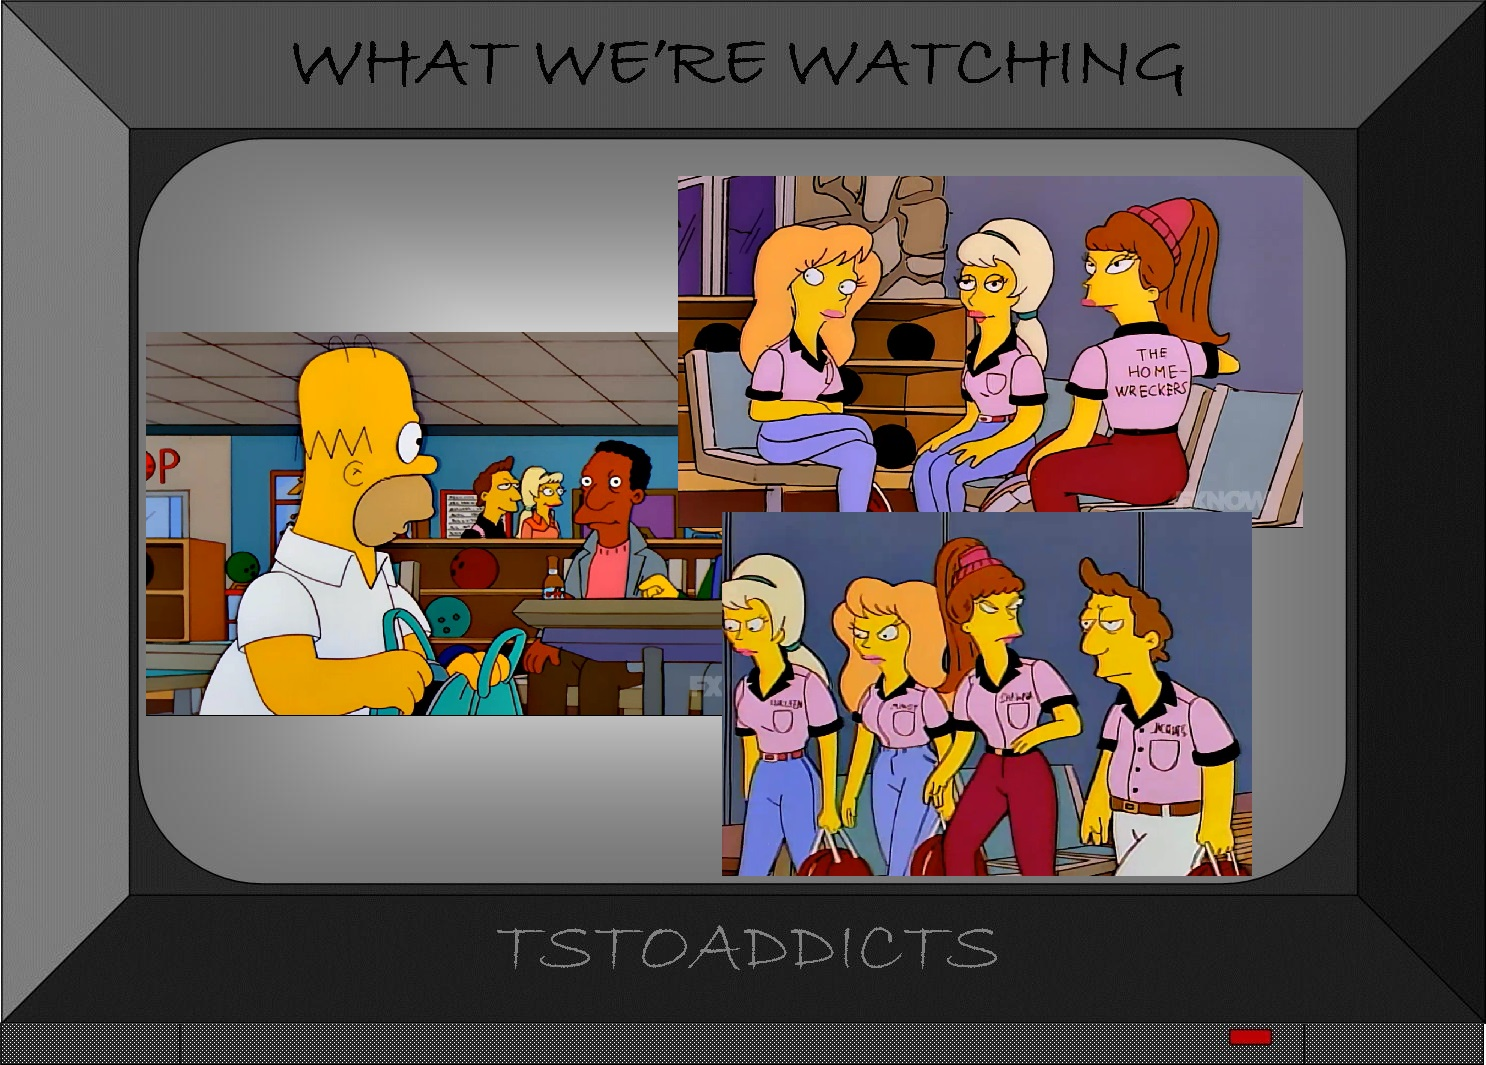 Where Did That Come From Jacques Fiesta Terracethe Simpsons Tapped Out Addictsall Things The Simpsons Tapped Out For The Tapped Out Addict In All Of Us